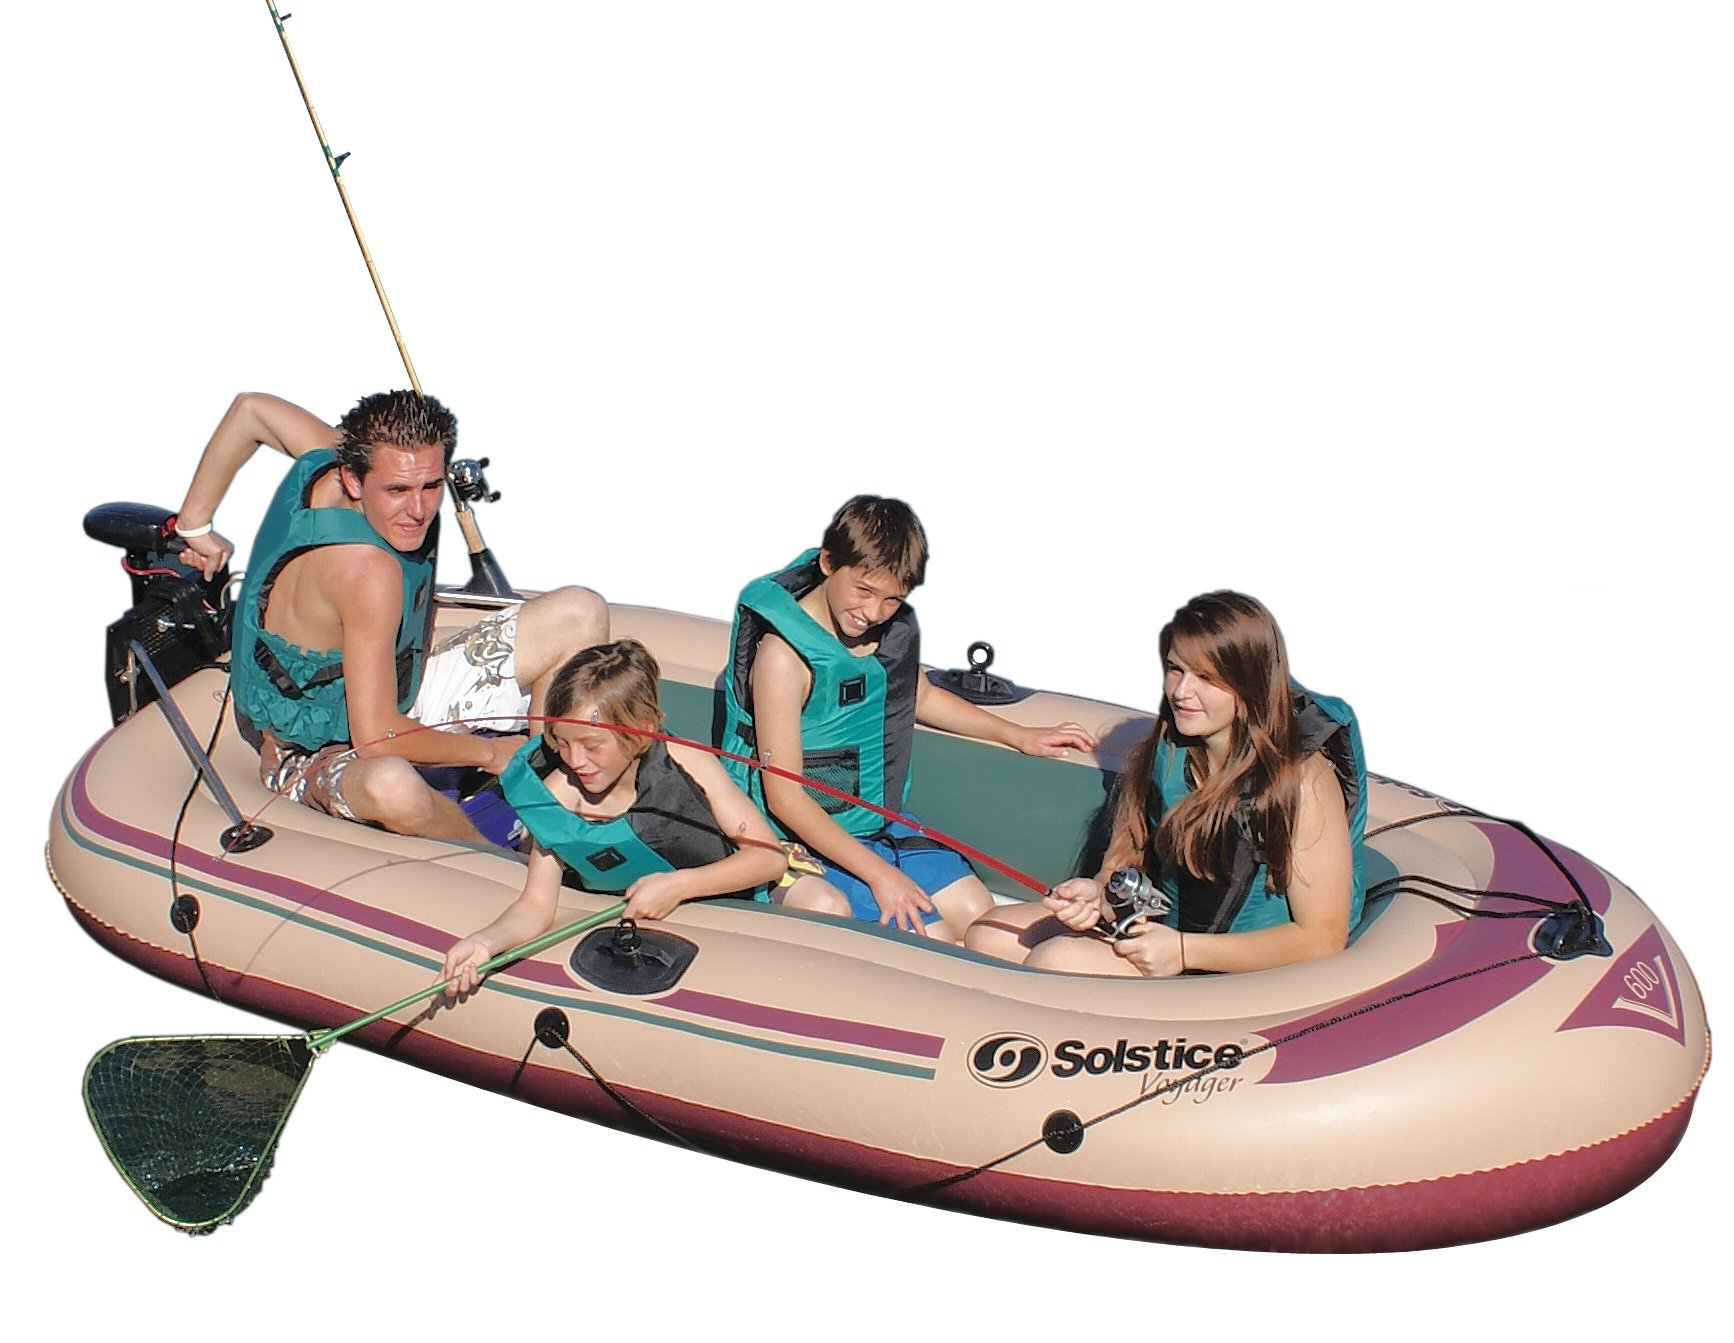 Solstice by Swimline Voyager 6-Person Boat by Solstice